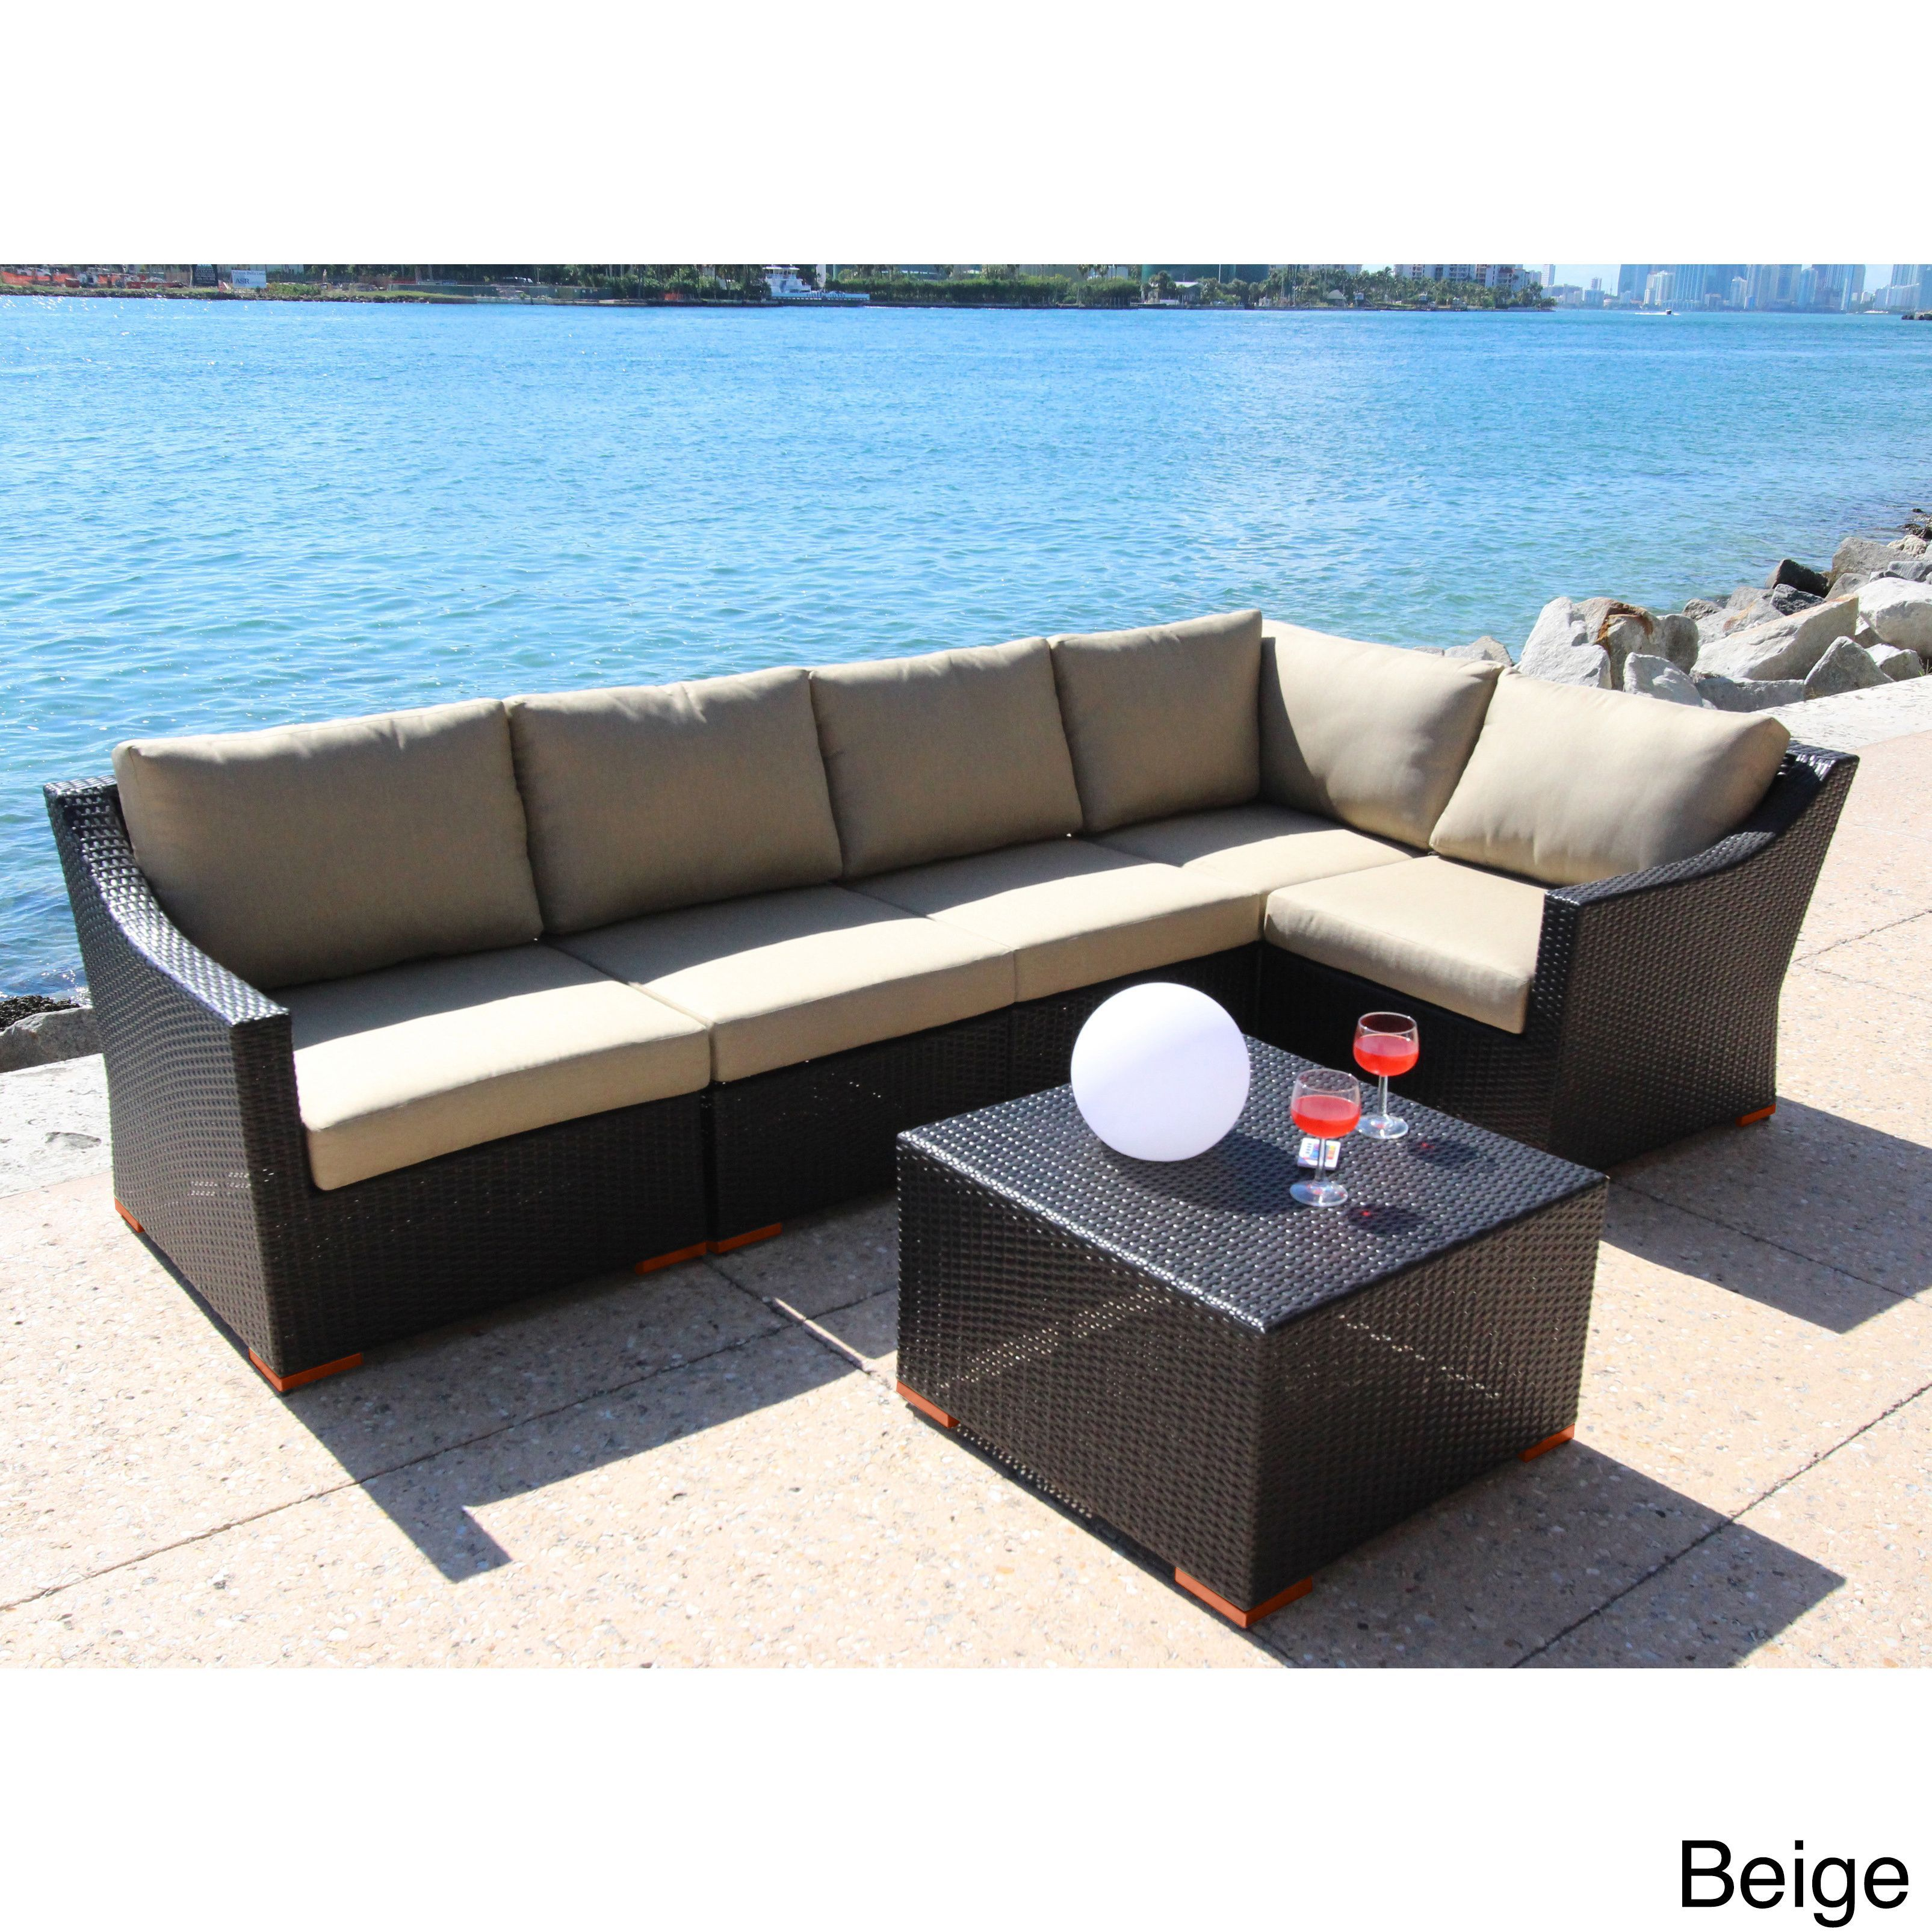 Bellini Home and Garden Anne piece Conversation Sectional Seating